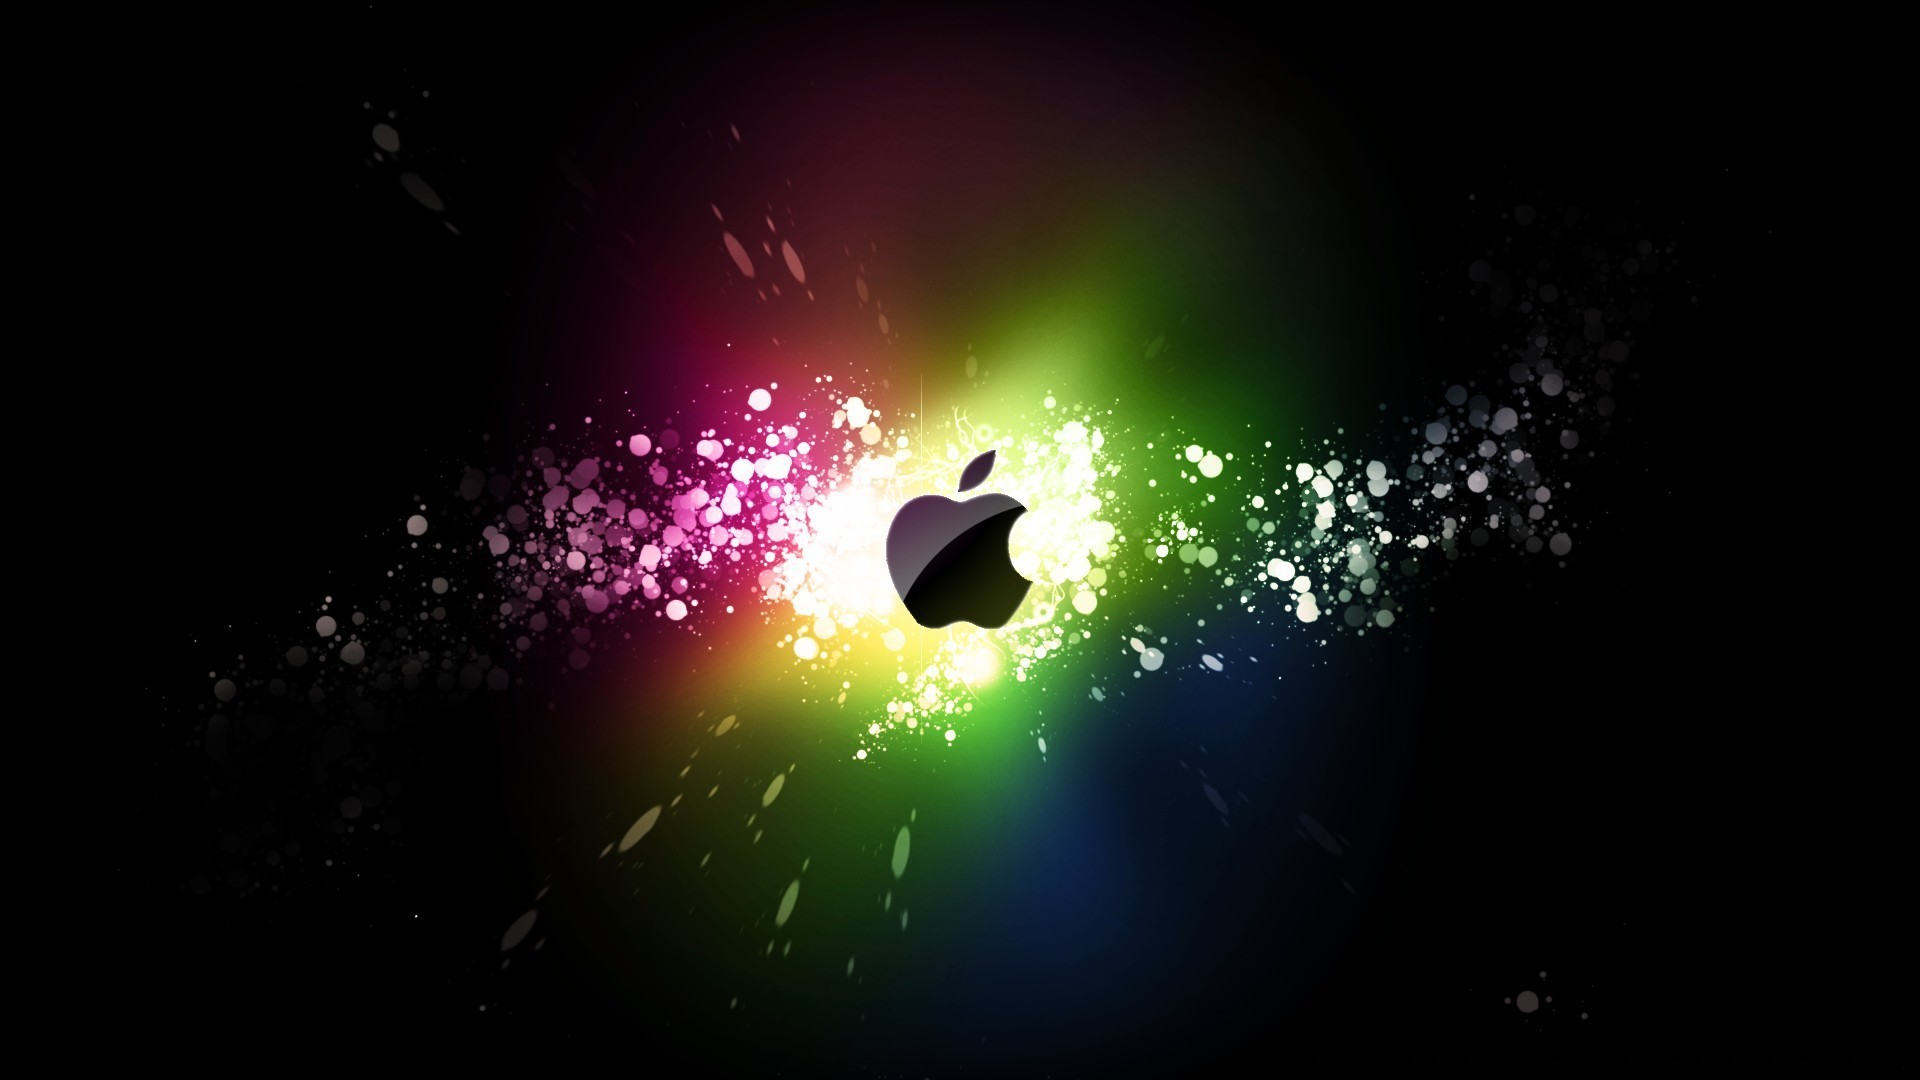 Res: 1920x1080, Apple 3d Background Widescreen 1 Download Desktop Wallpapers HD Images  Amazing Background Images Free Pictures Smart Phone